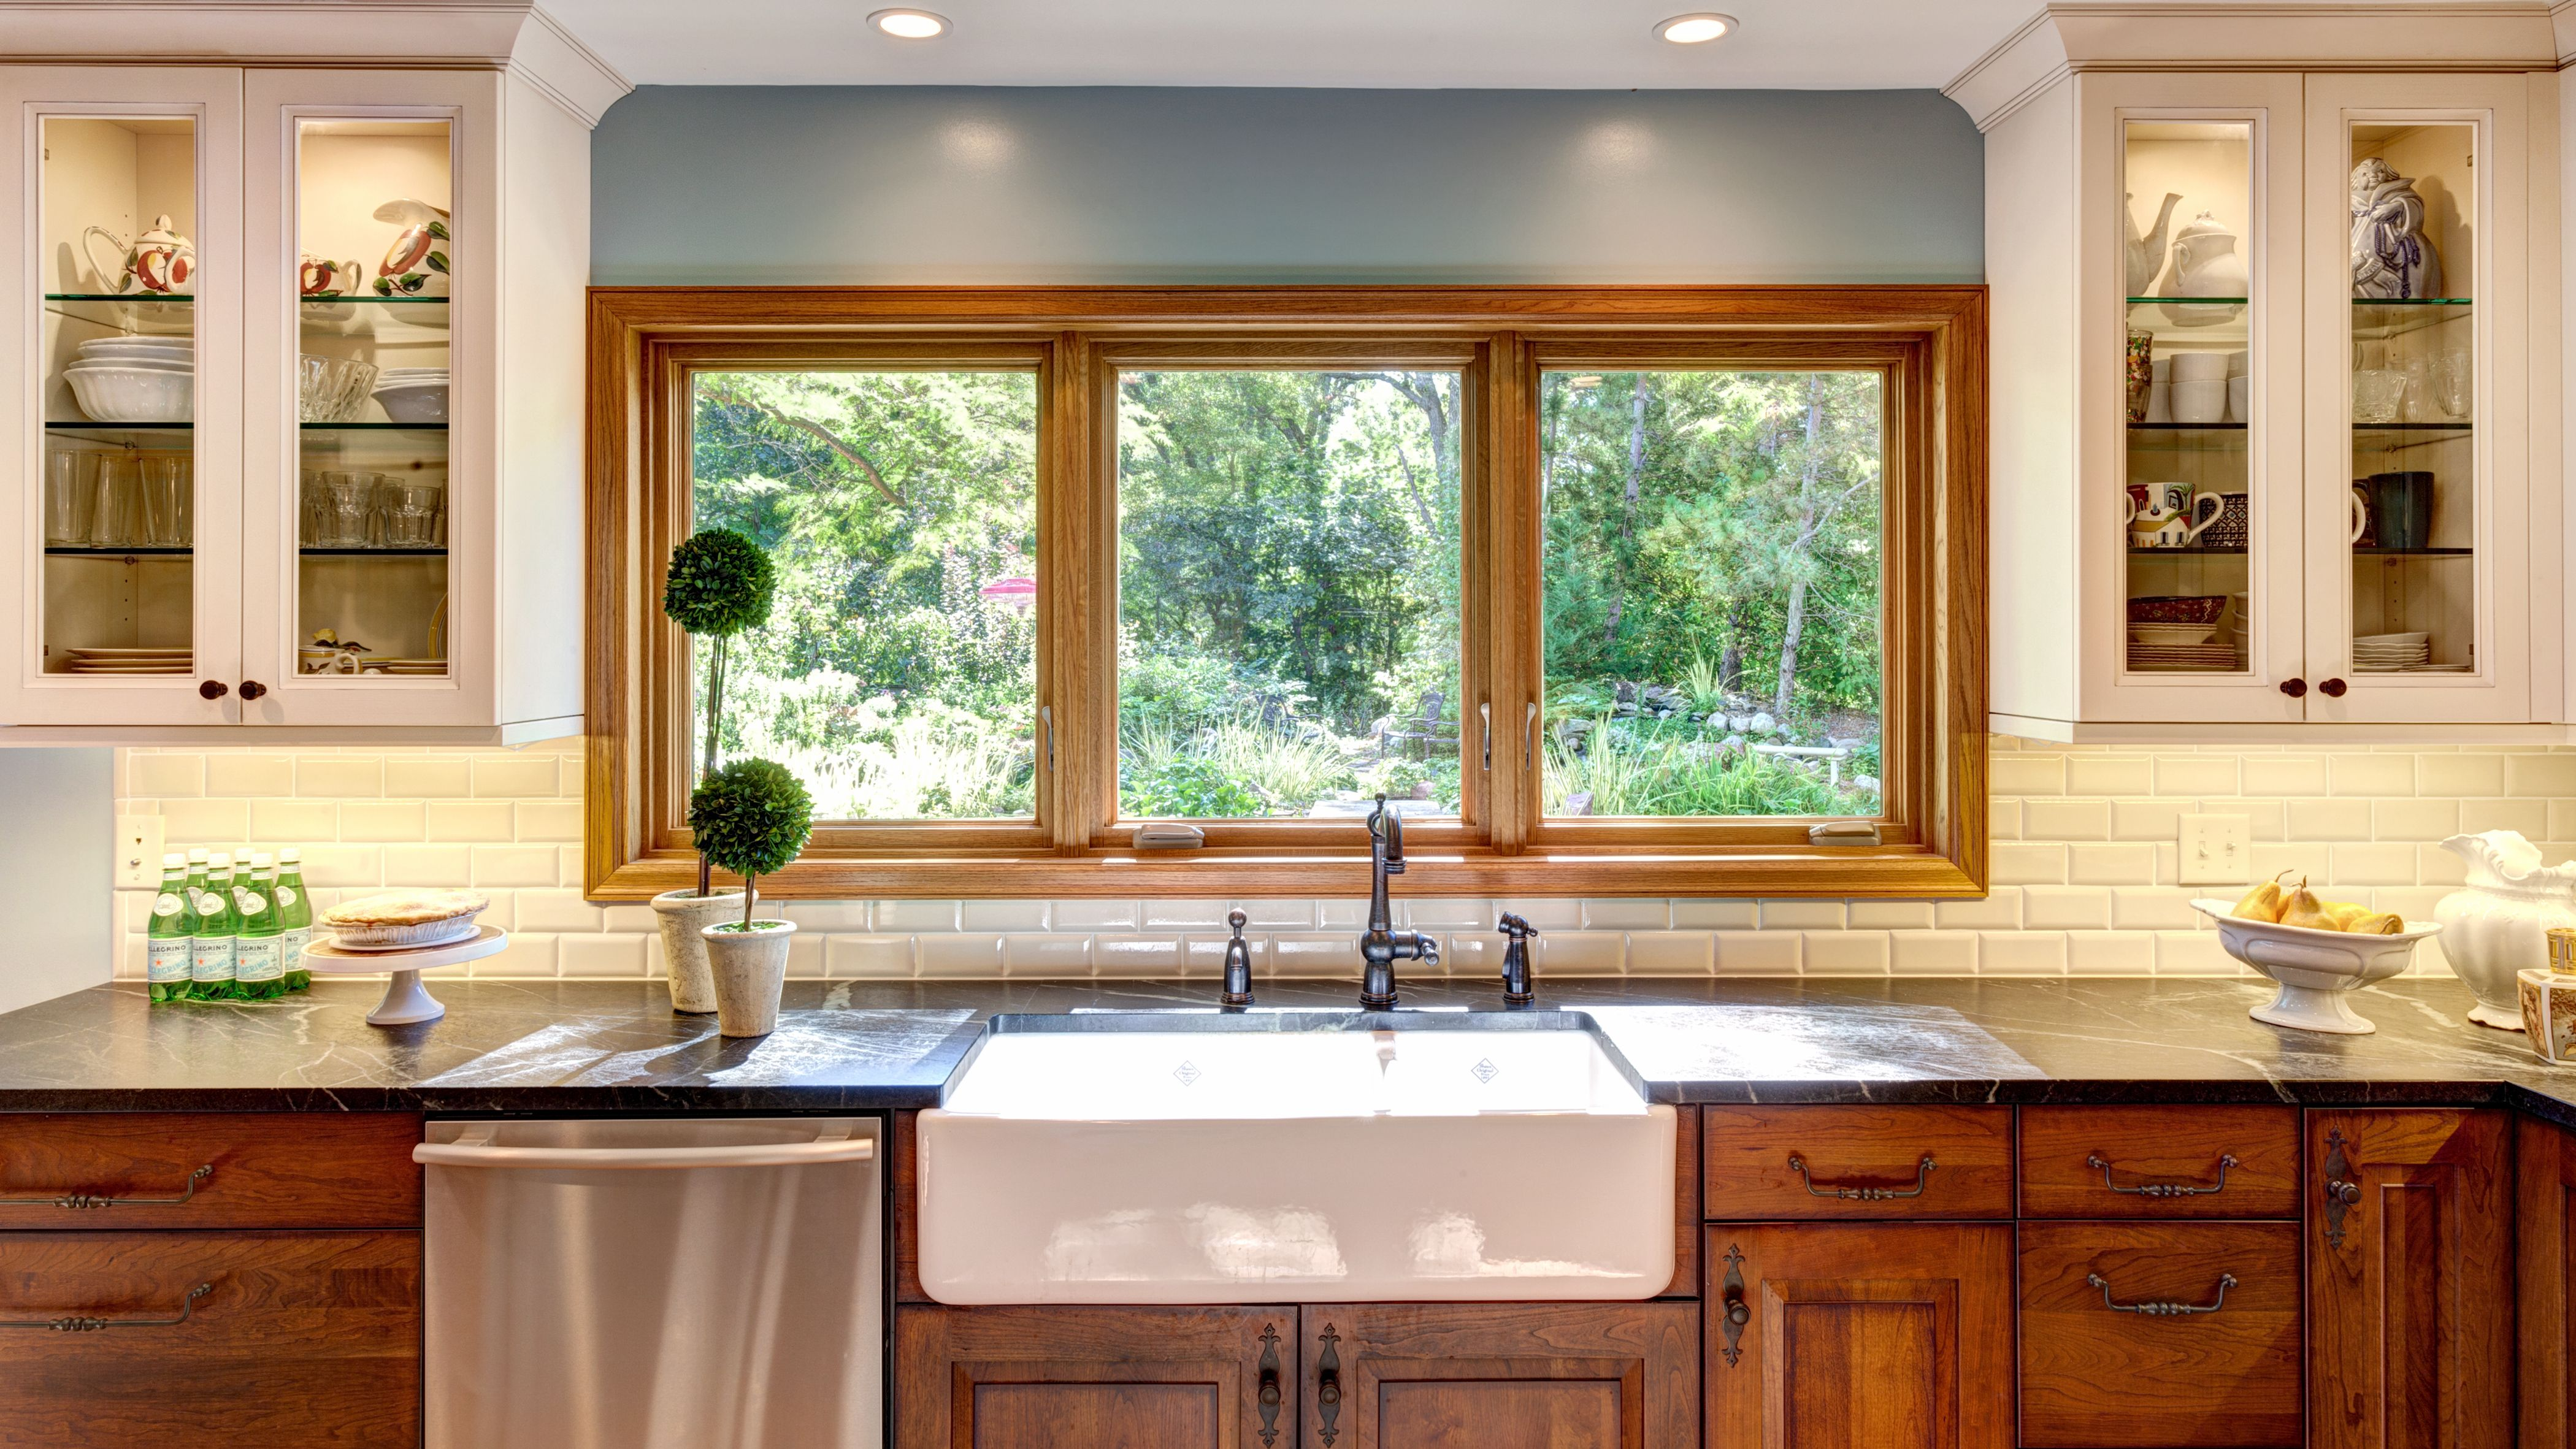 Beautiful kitchen remodel by Codie Donahue Interior Design.  Soapstone countertops and cherry cabinets